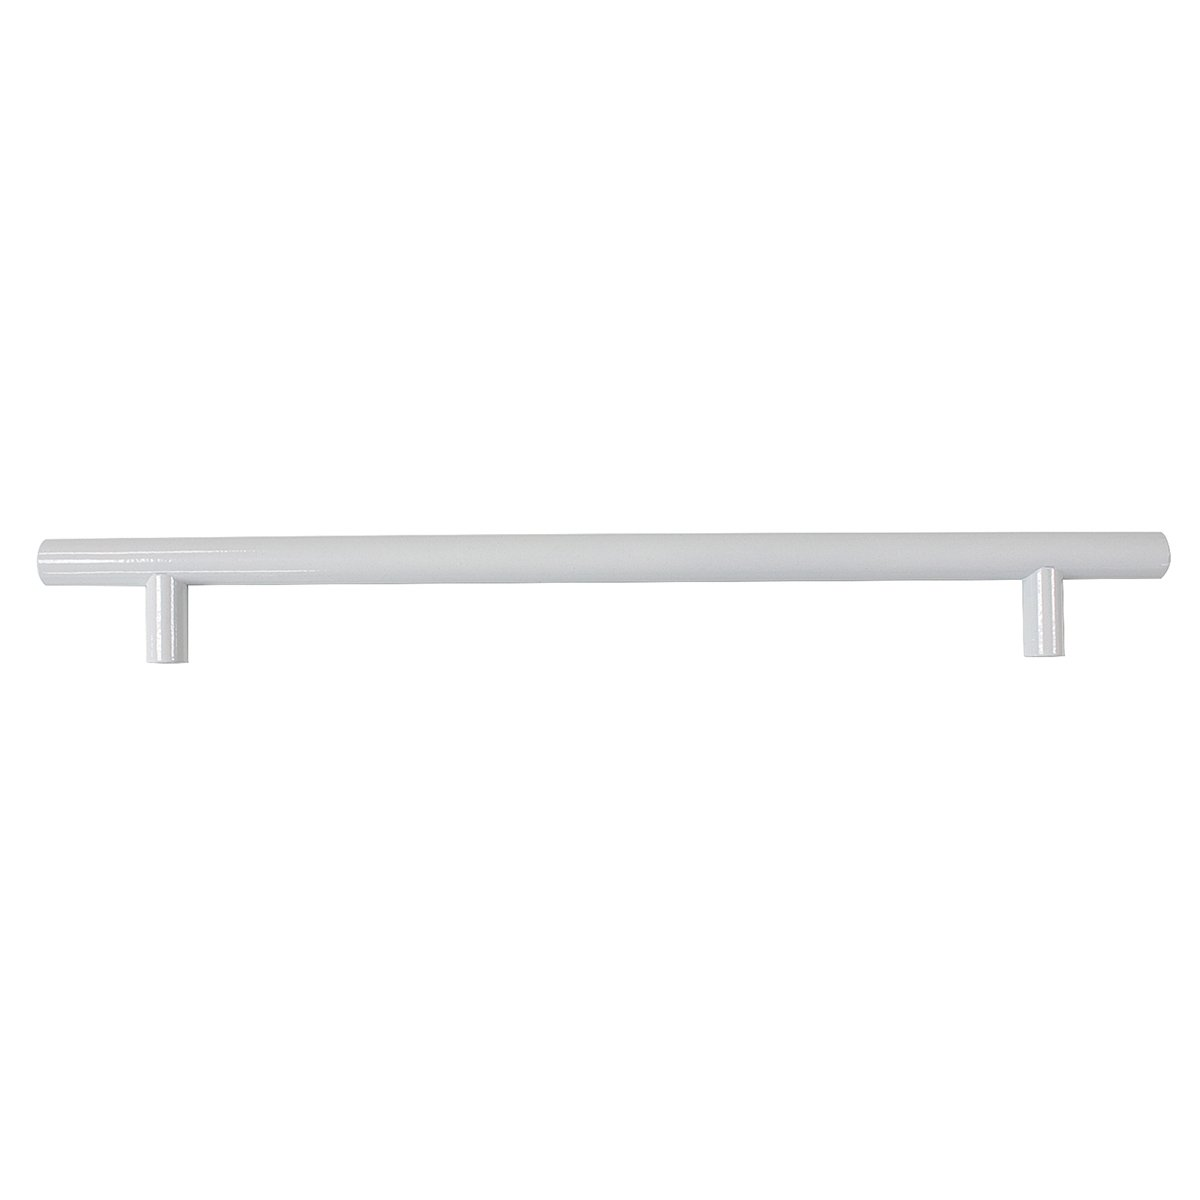 Probrico Modern Cabinet Hardware Dresser Cupboard Handle Pull White Kitchen Cabinet T Bar Knobs Stainless Steel- 12mm Diameter - 8-3/4 Hole Spacing - 5 Pack by Probrico (Image #1)